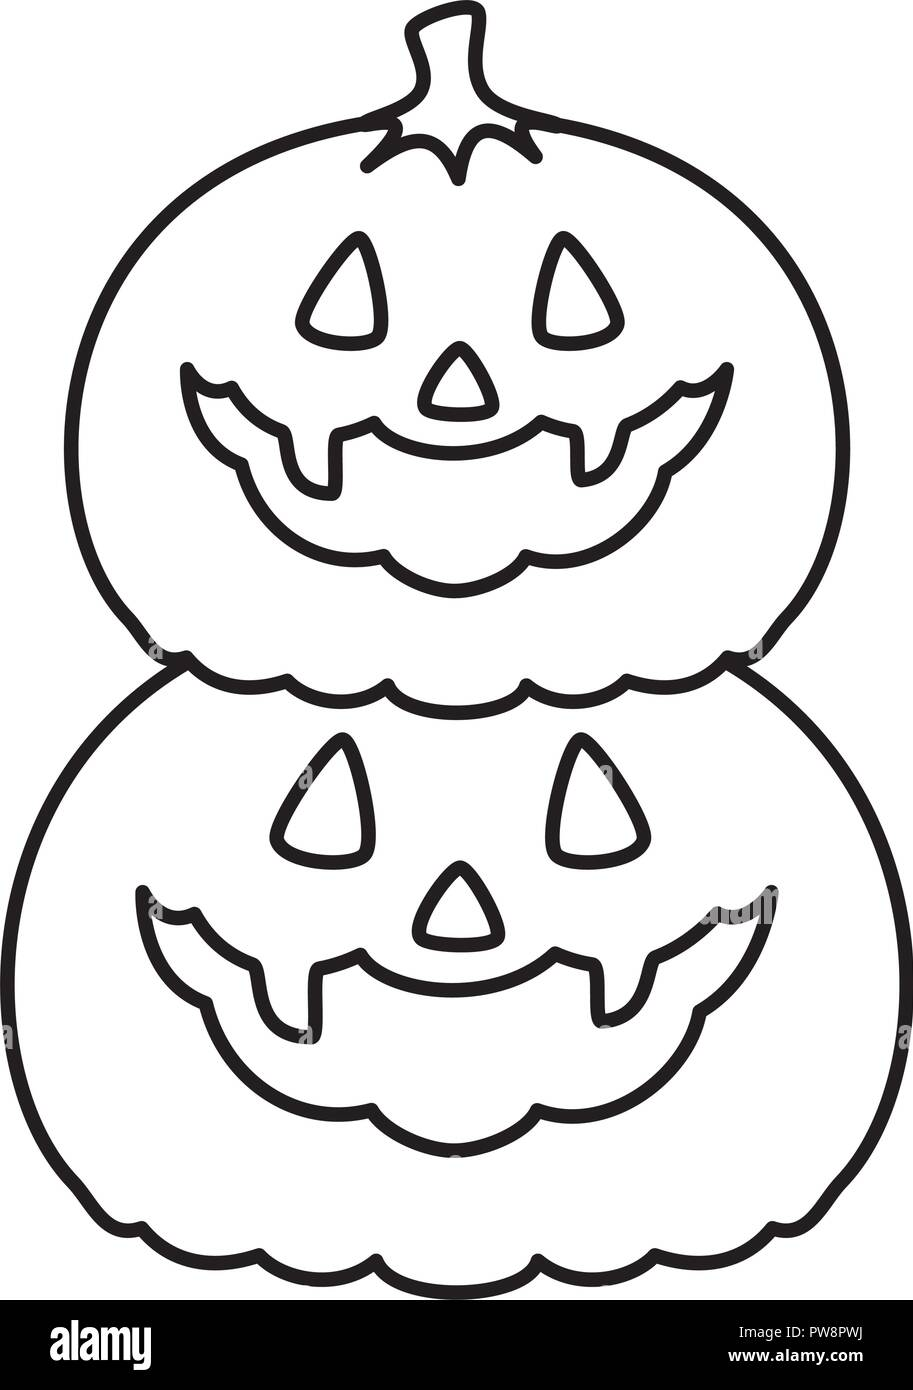 happy halloween pumpkins characters - Stock Vector